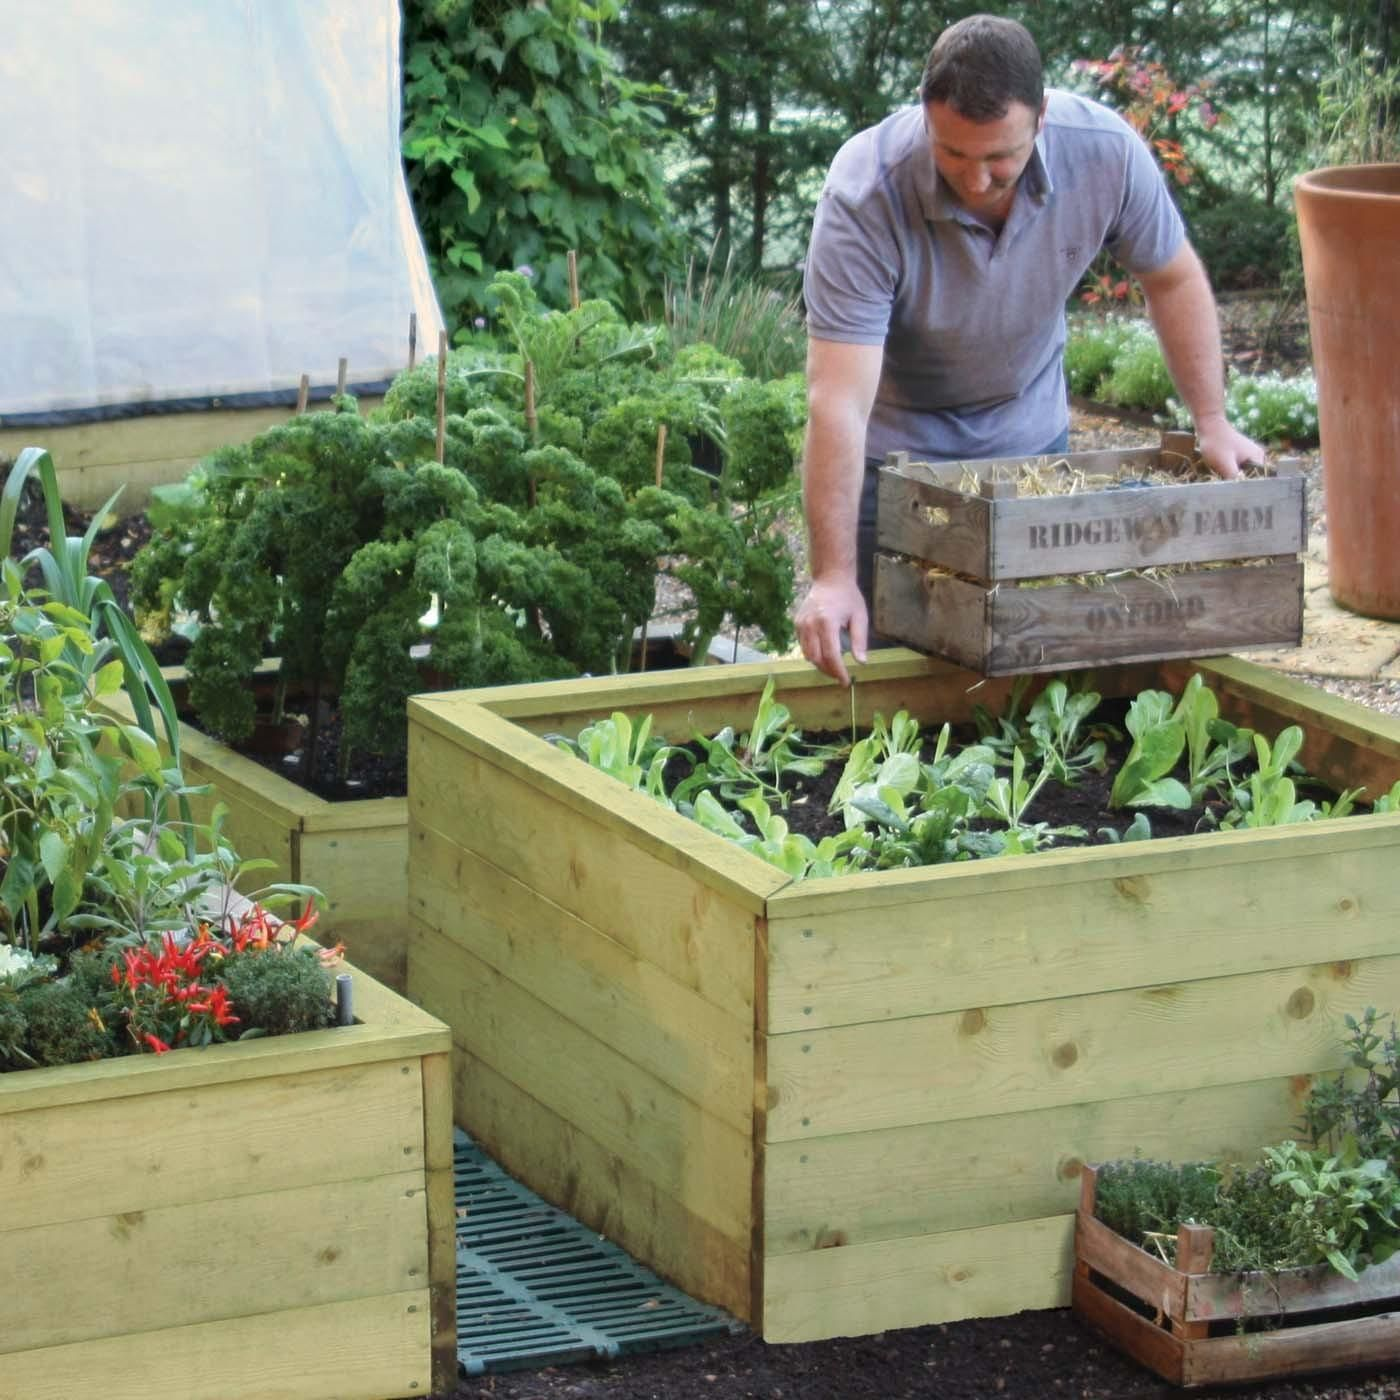 Standard Wooden Raised Beds Raised beds, Raised bed kits